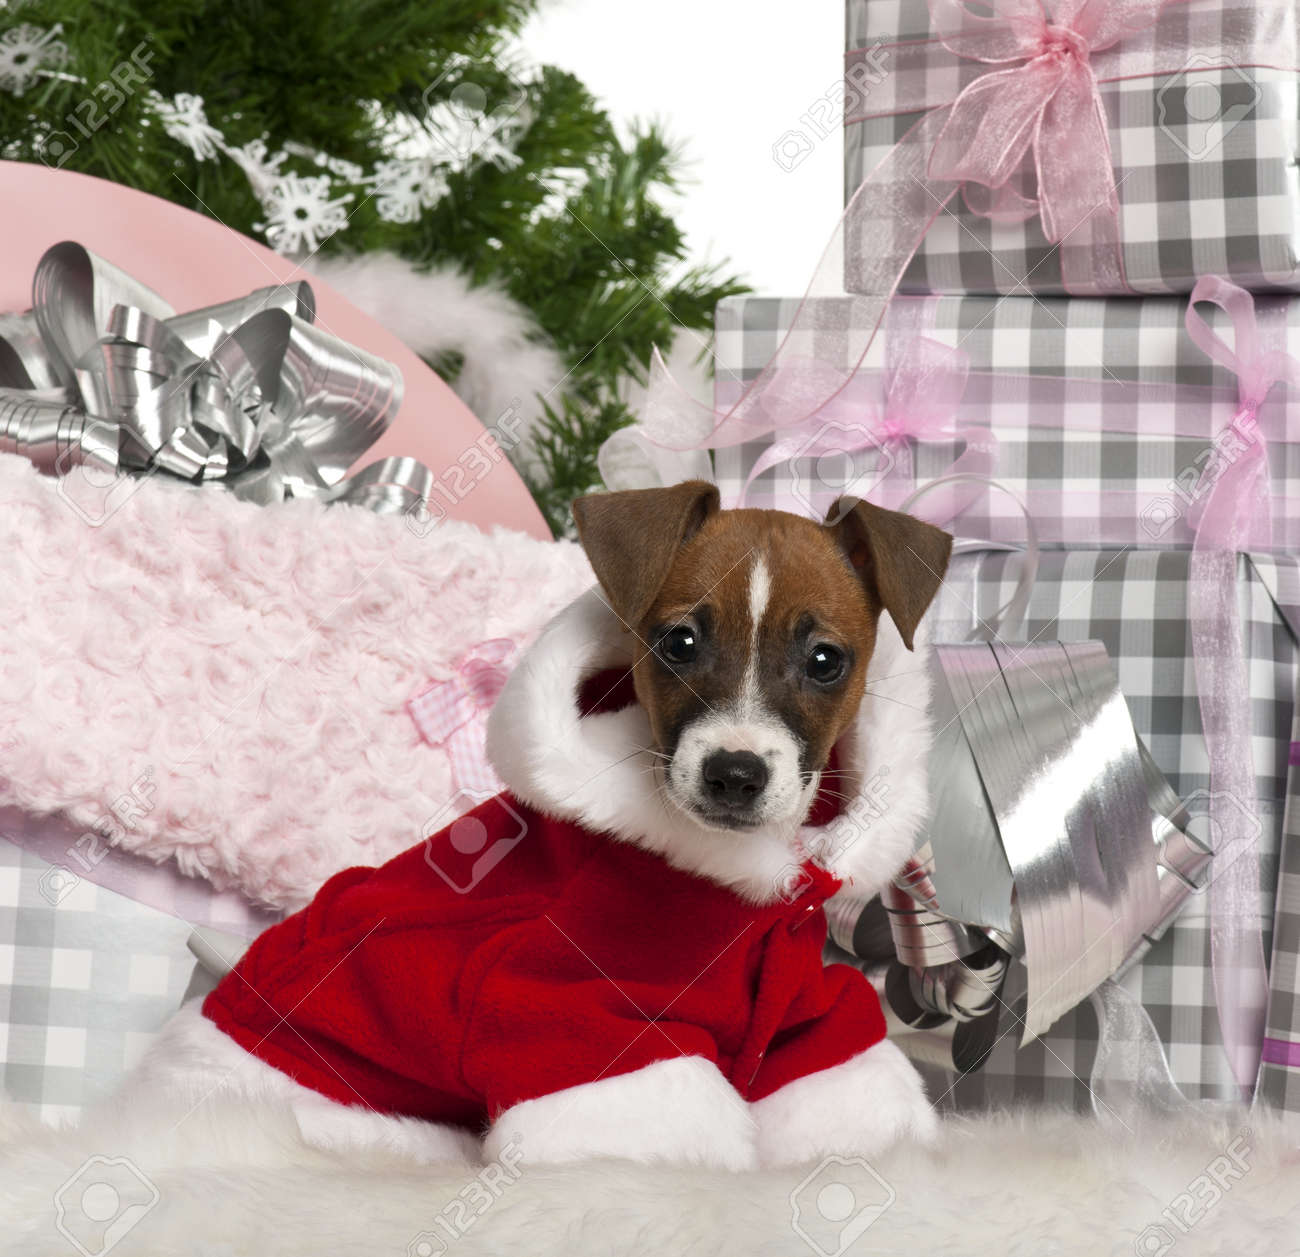 Jack Russell Terrier puppy, 11 weeks old, with Christmas gifts in front of white background Stock Photo - 11613520